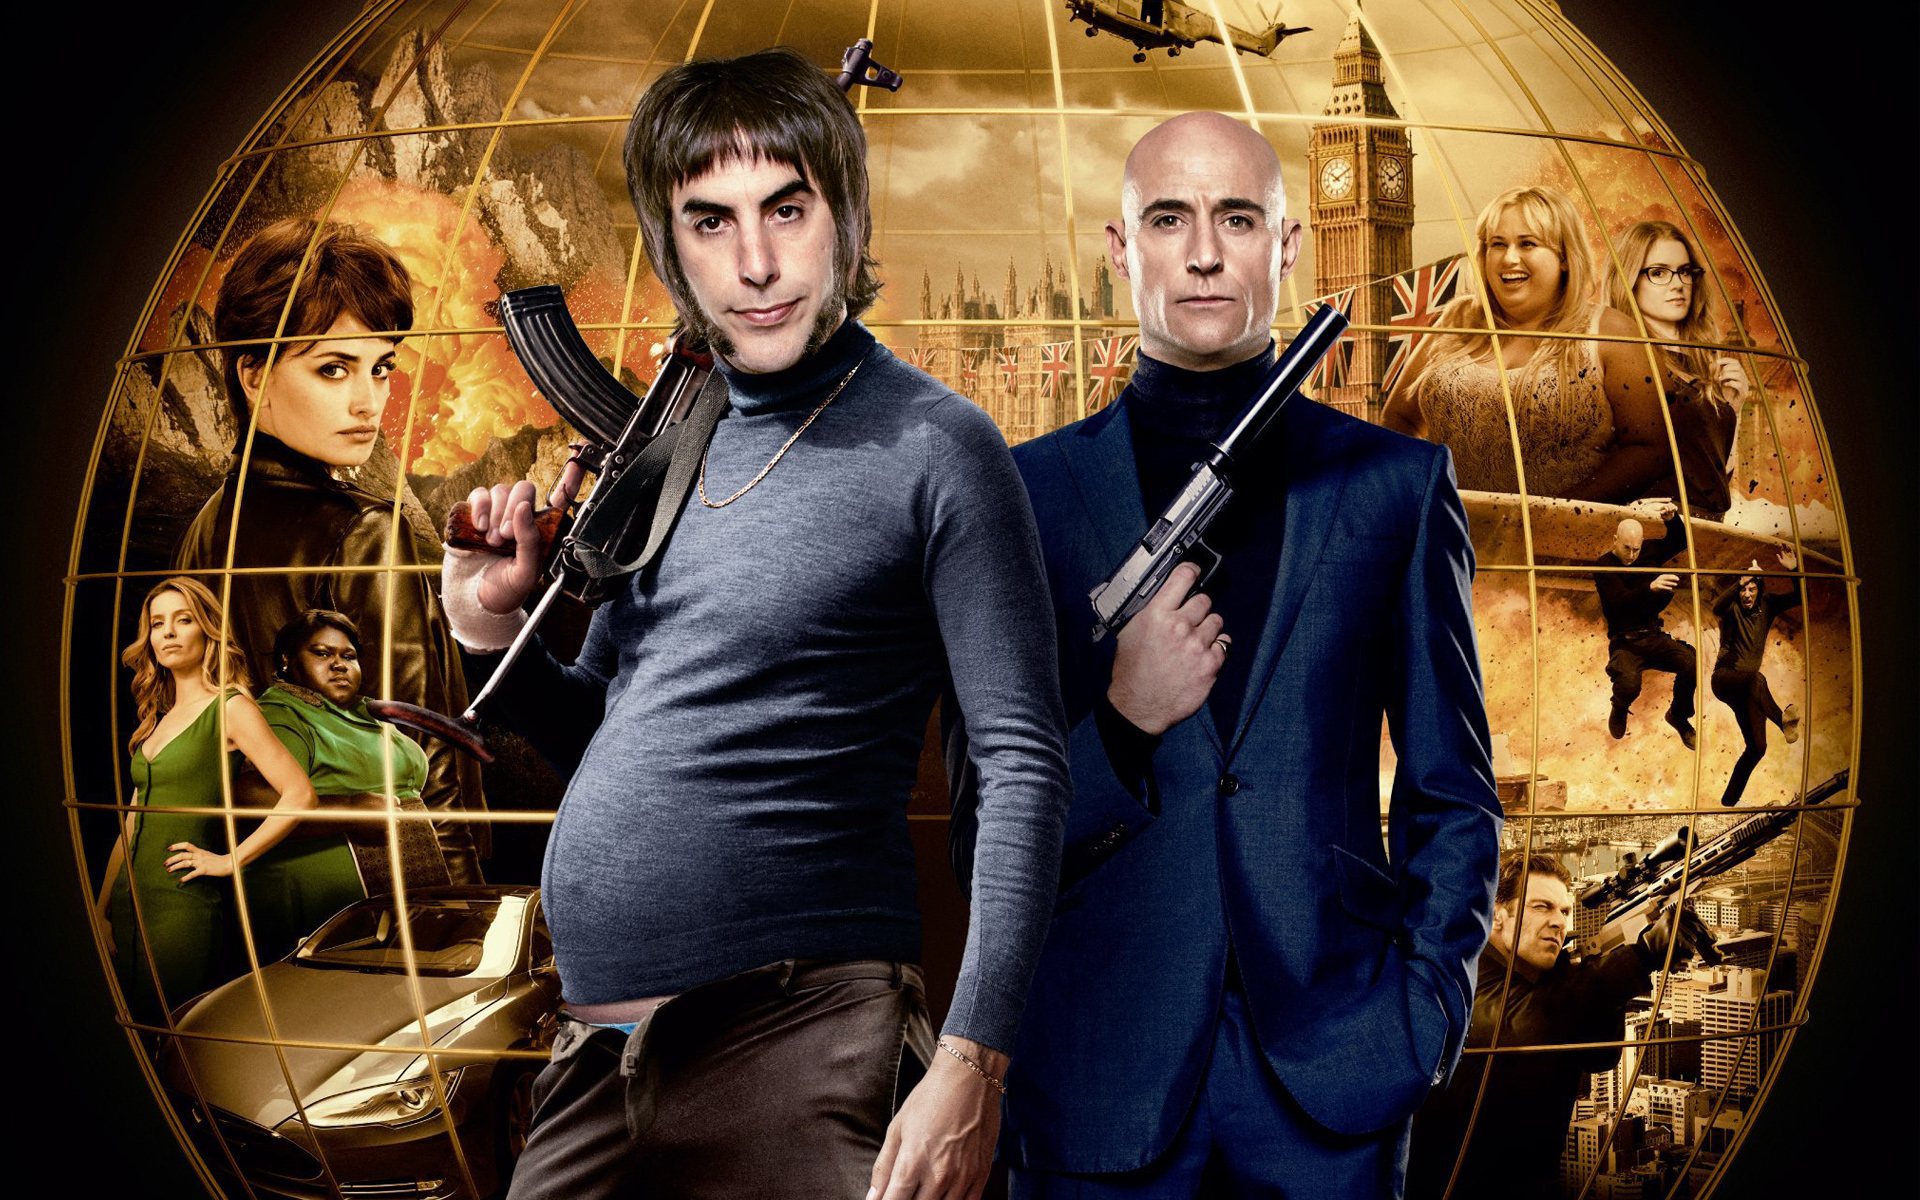 Grimsby (2016) The Brothers Grimsby 002